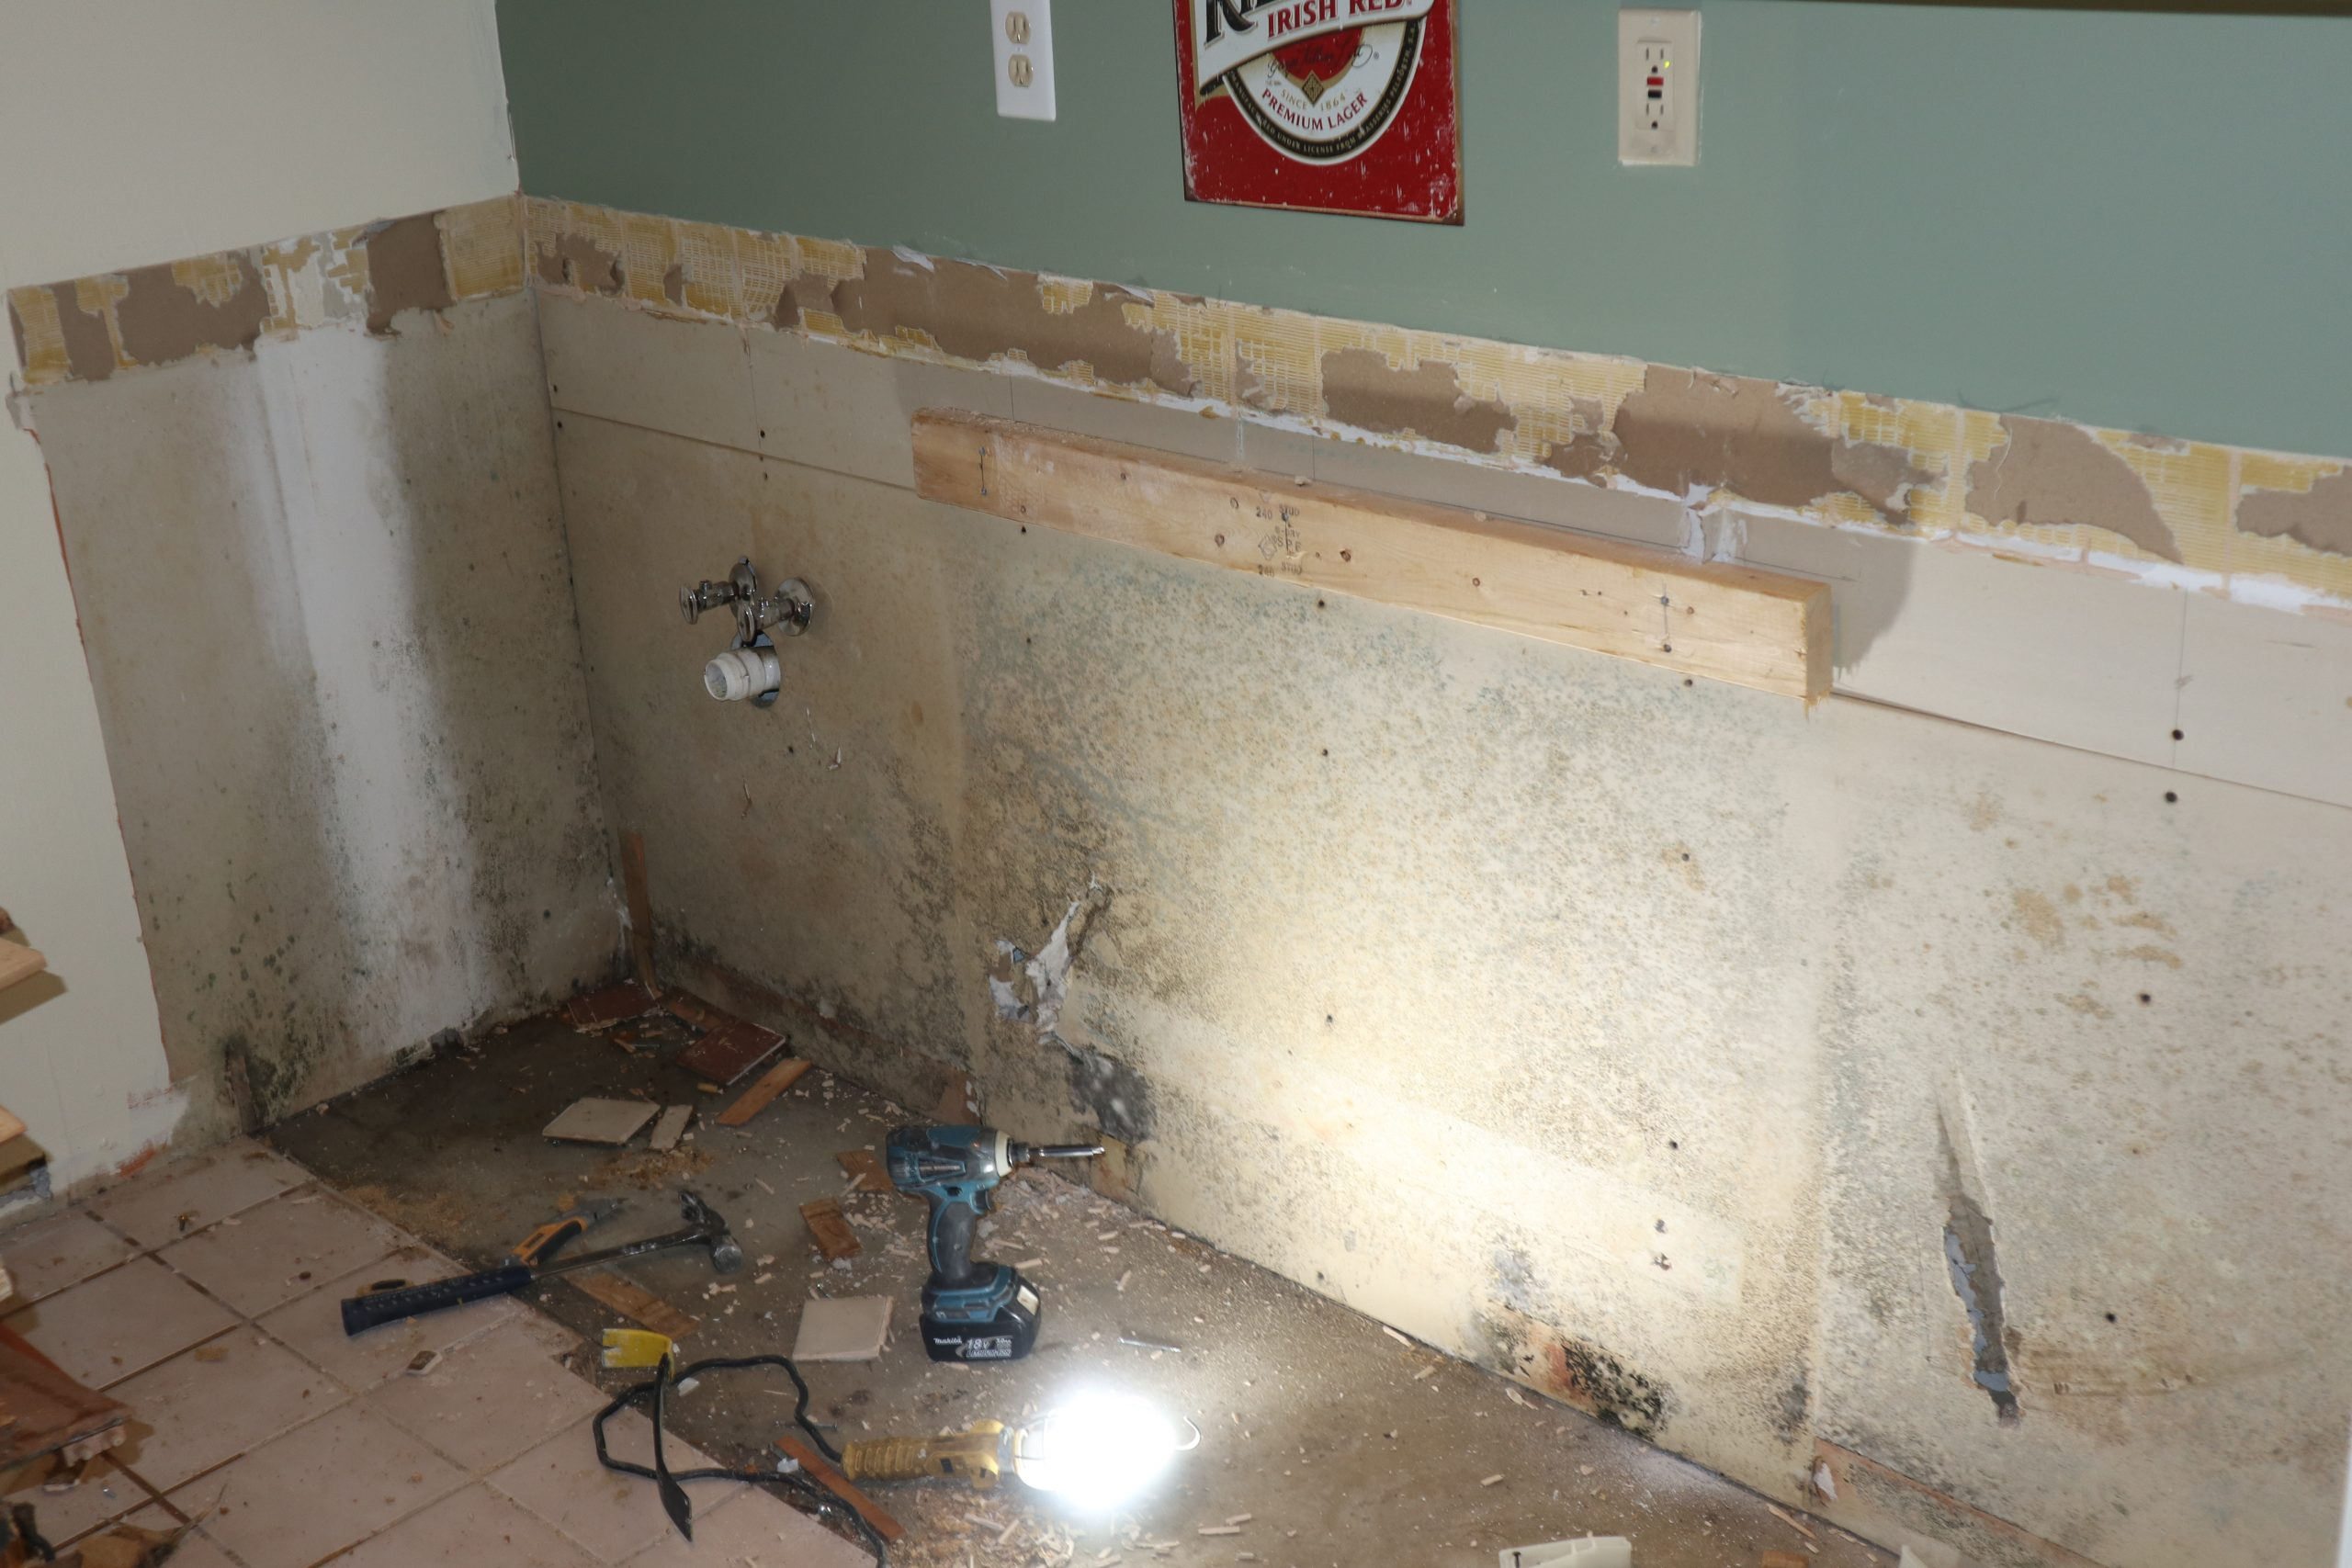 Mold behind cabinets